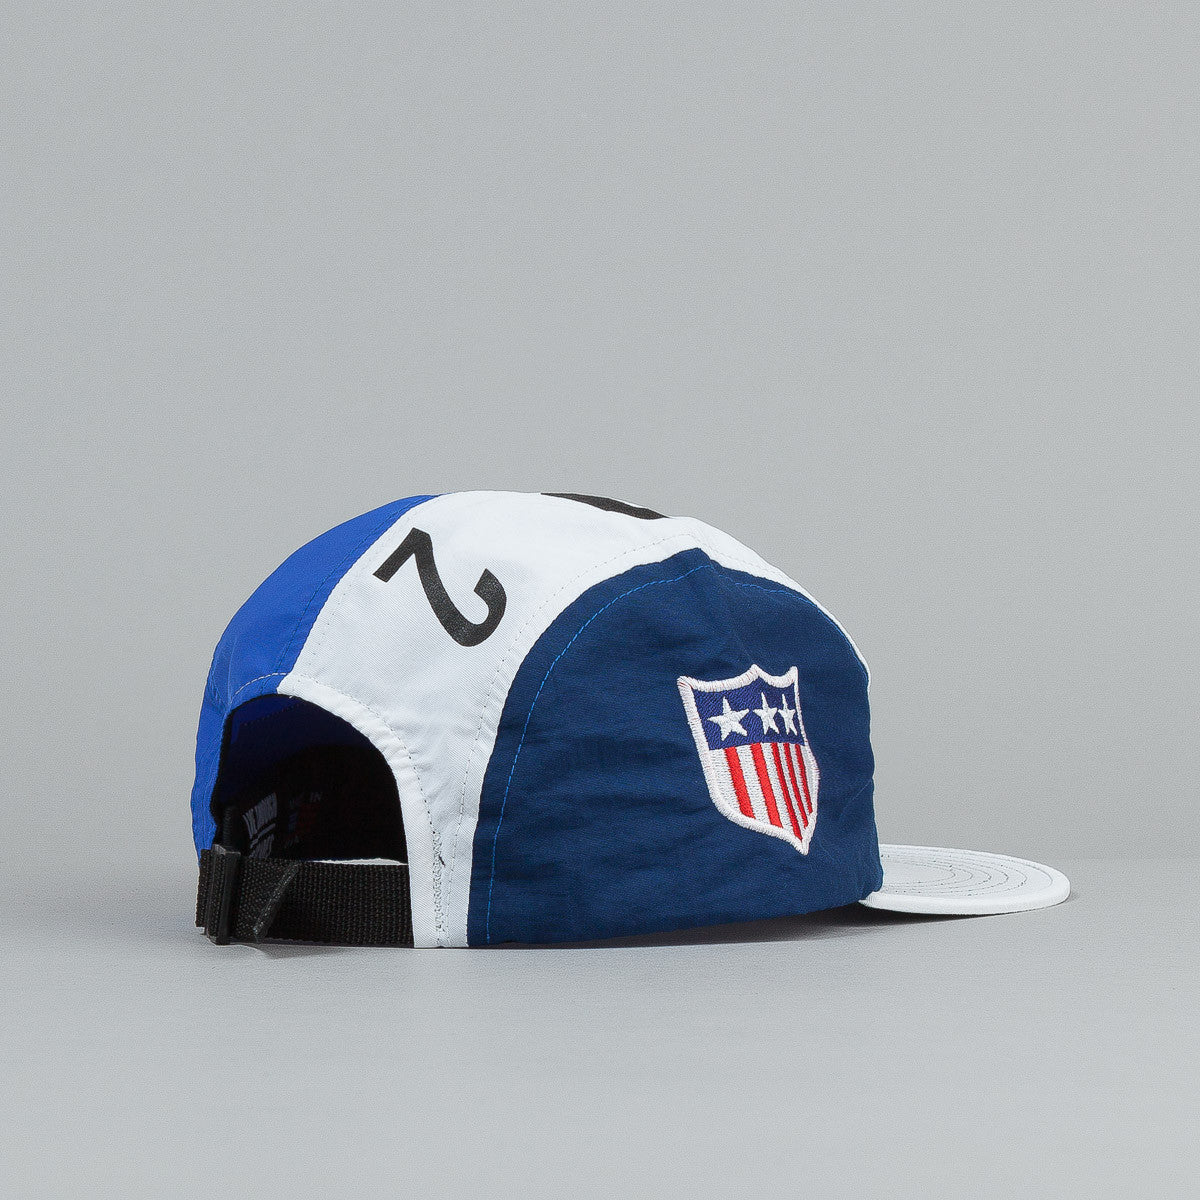 The Decades Summer Games 4 Panel Cap - White / Blue